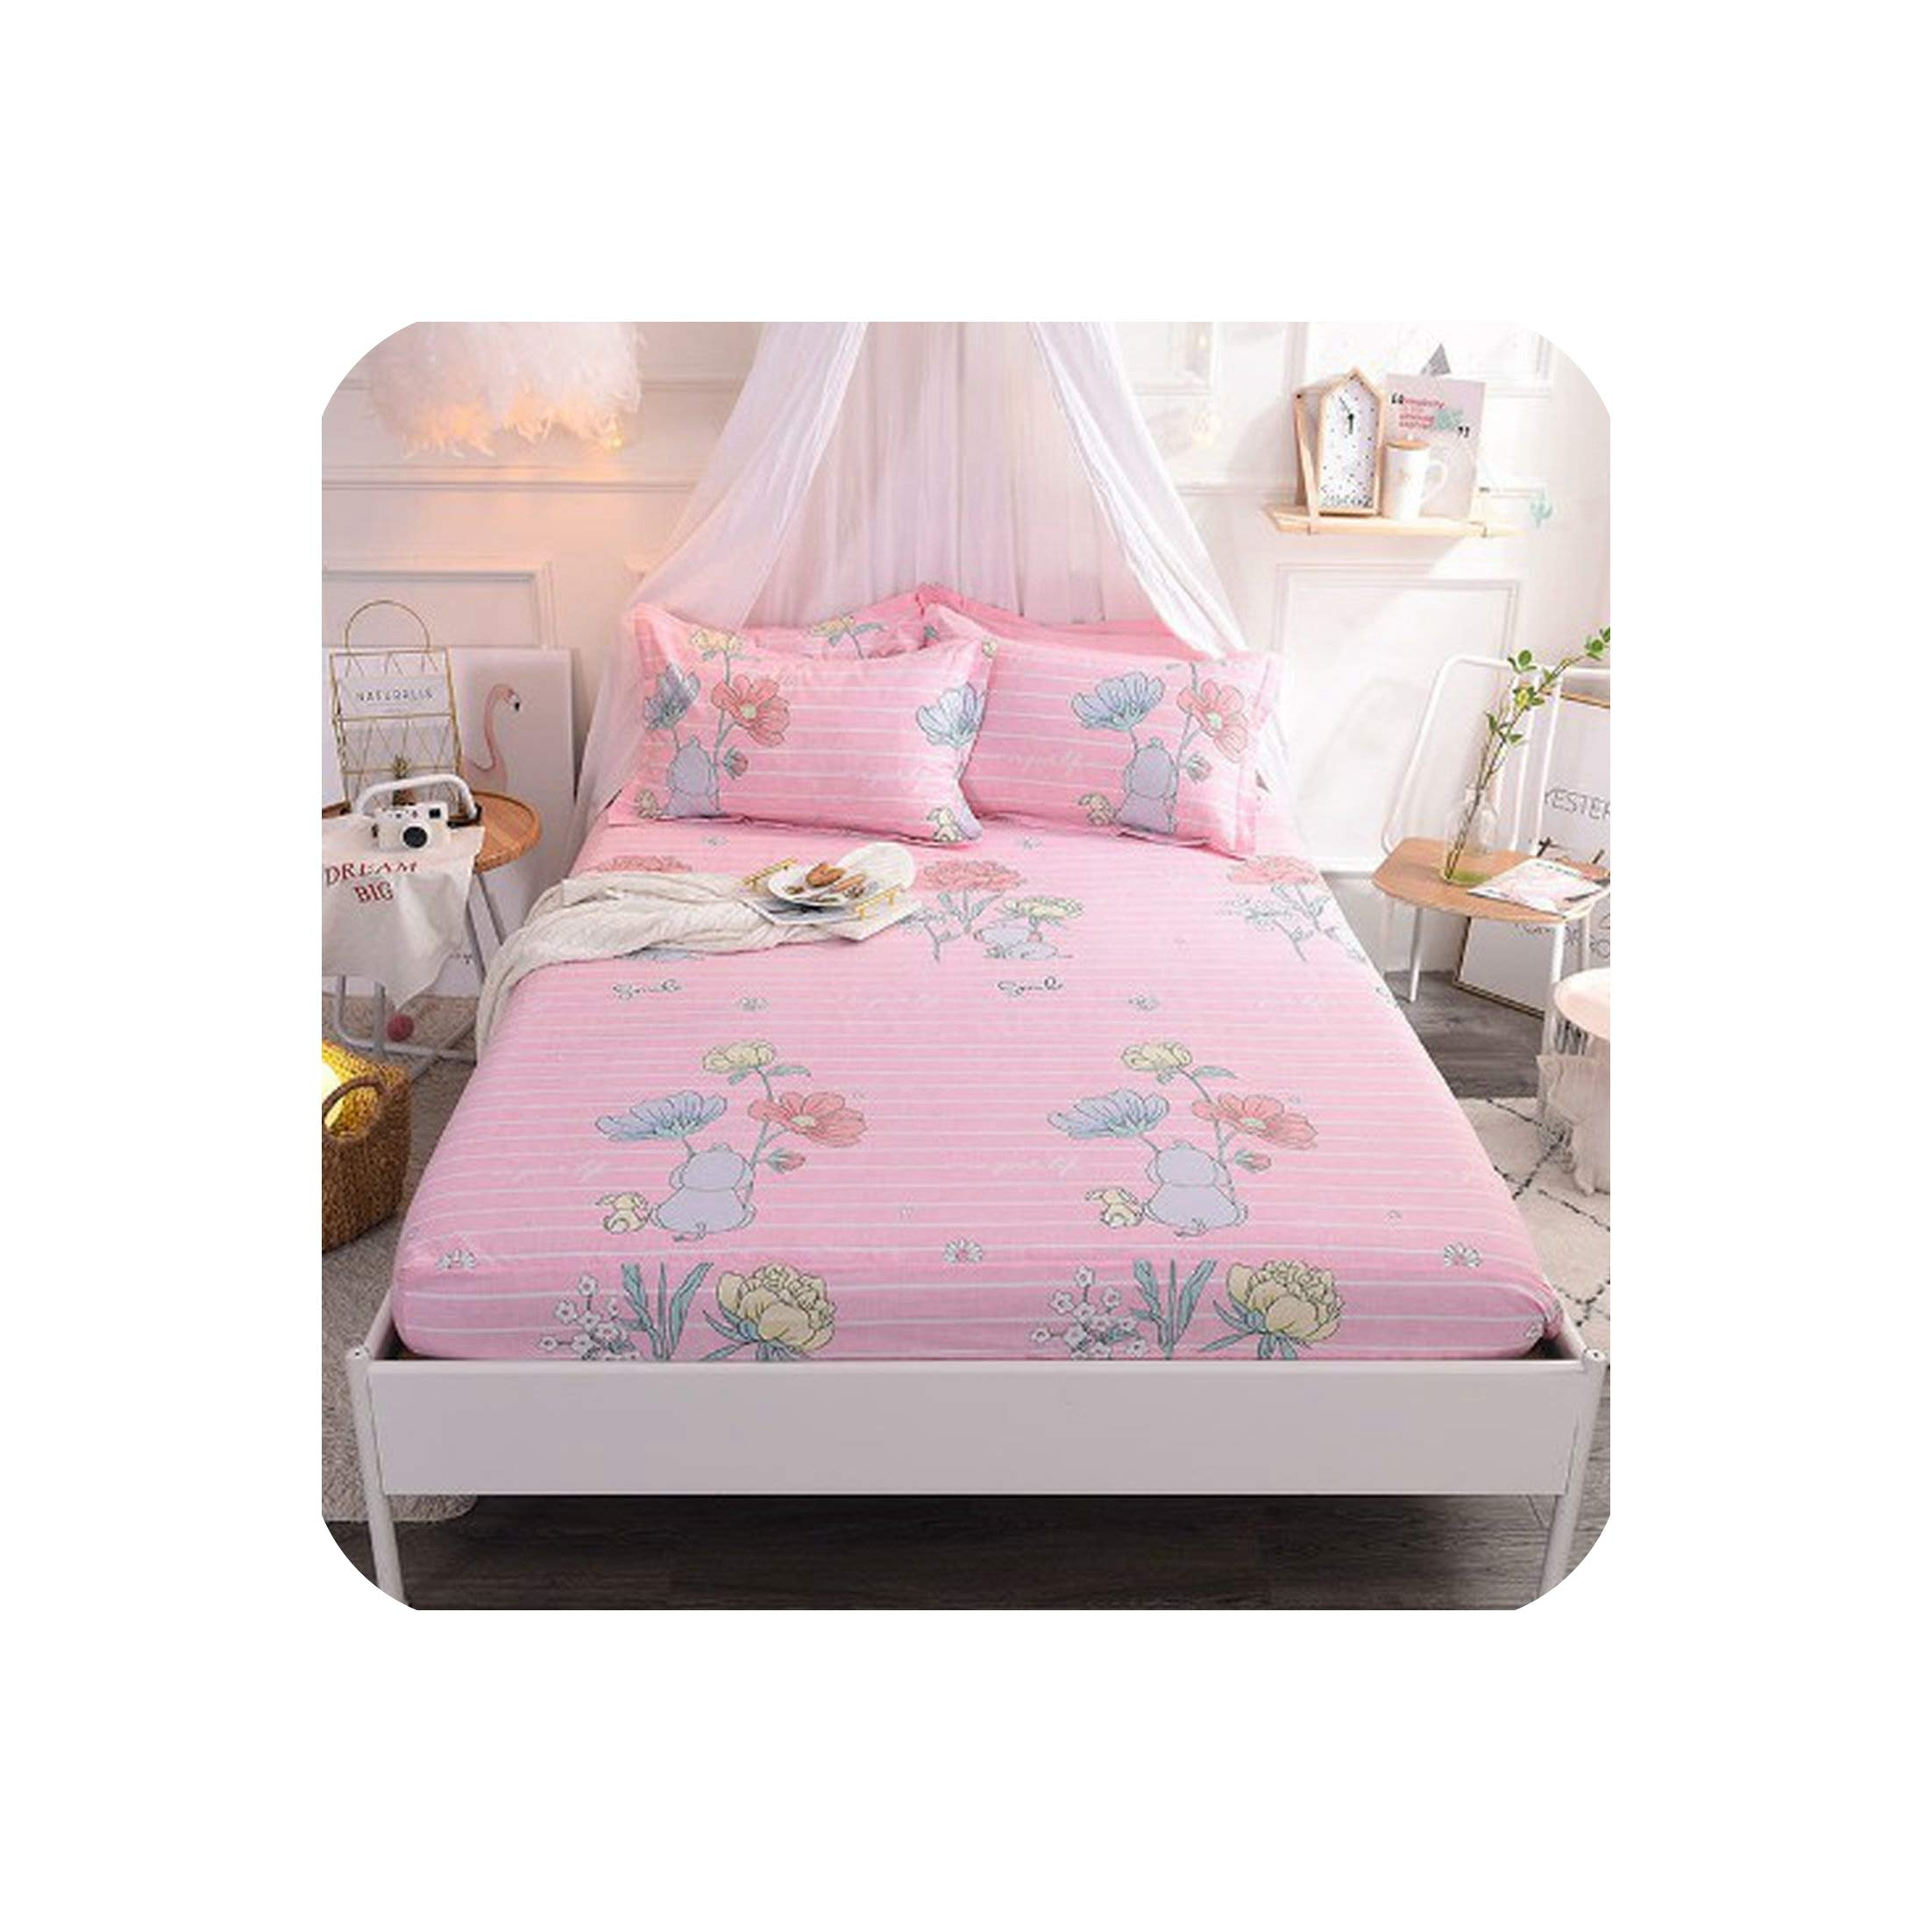 100% Pure Cotton Fitted Sheet Lovely Flora Twin/Full/Queen Size Bedsheet Set ShamsFlower Colorful Striped Kids Children's Bed,Fitted Sheet 4,180cmX200cm 3Pcs